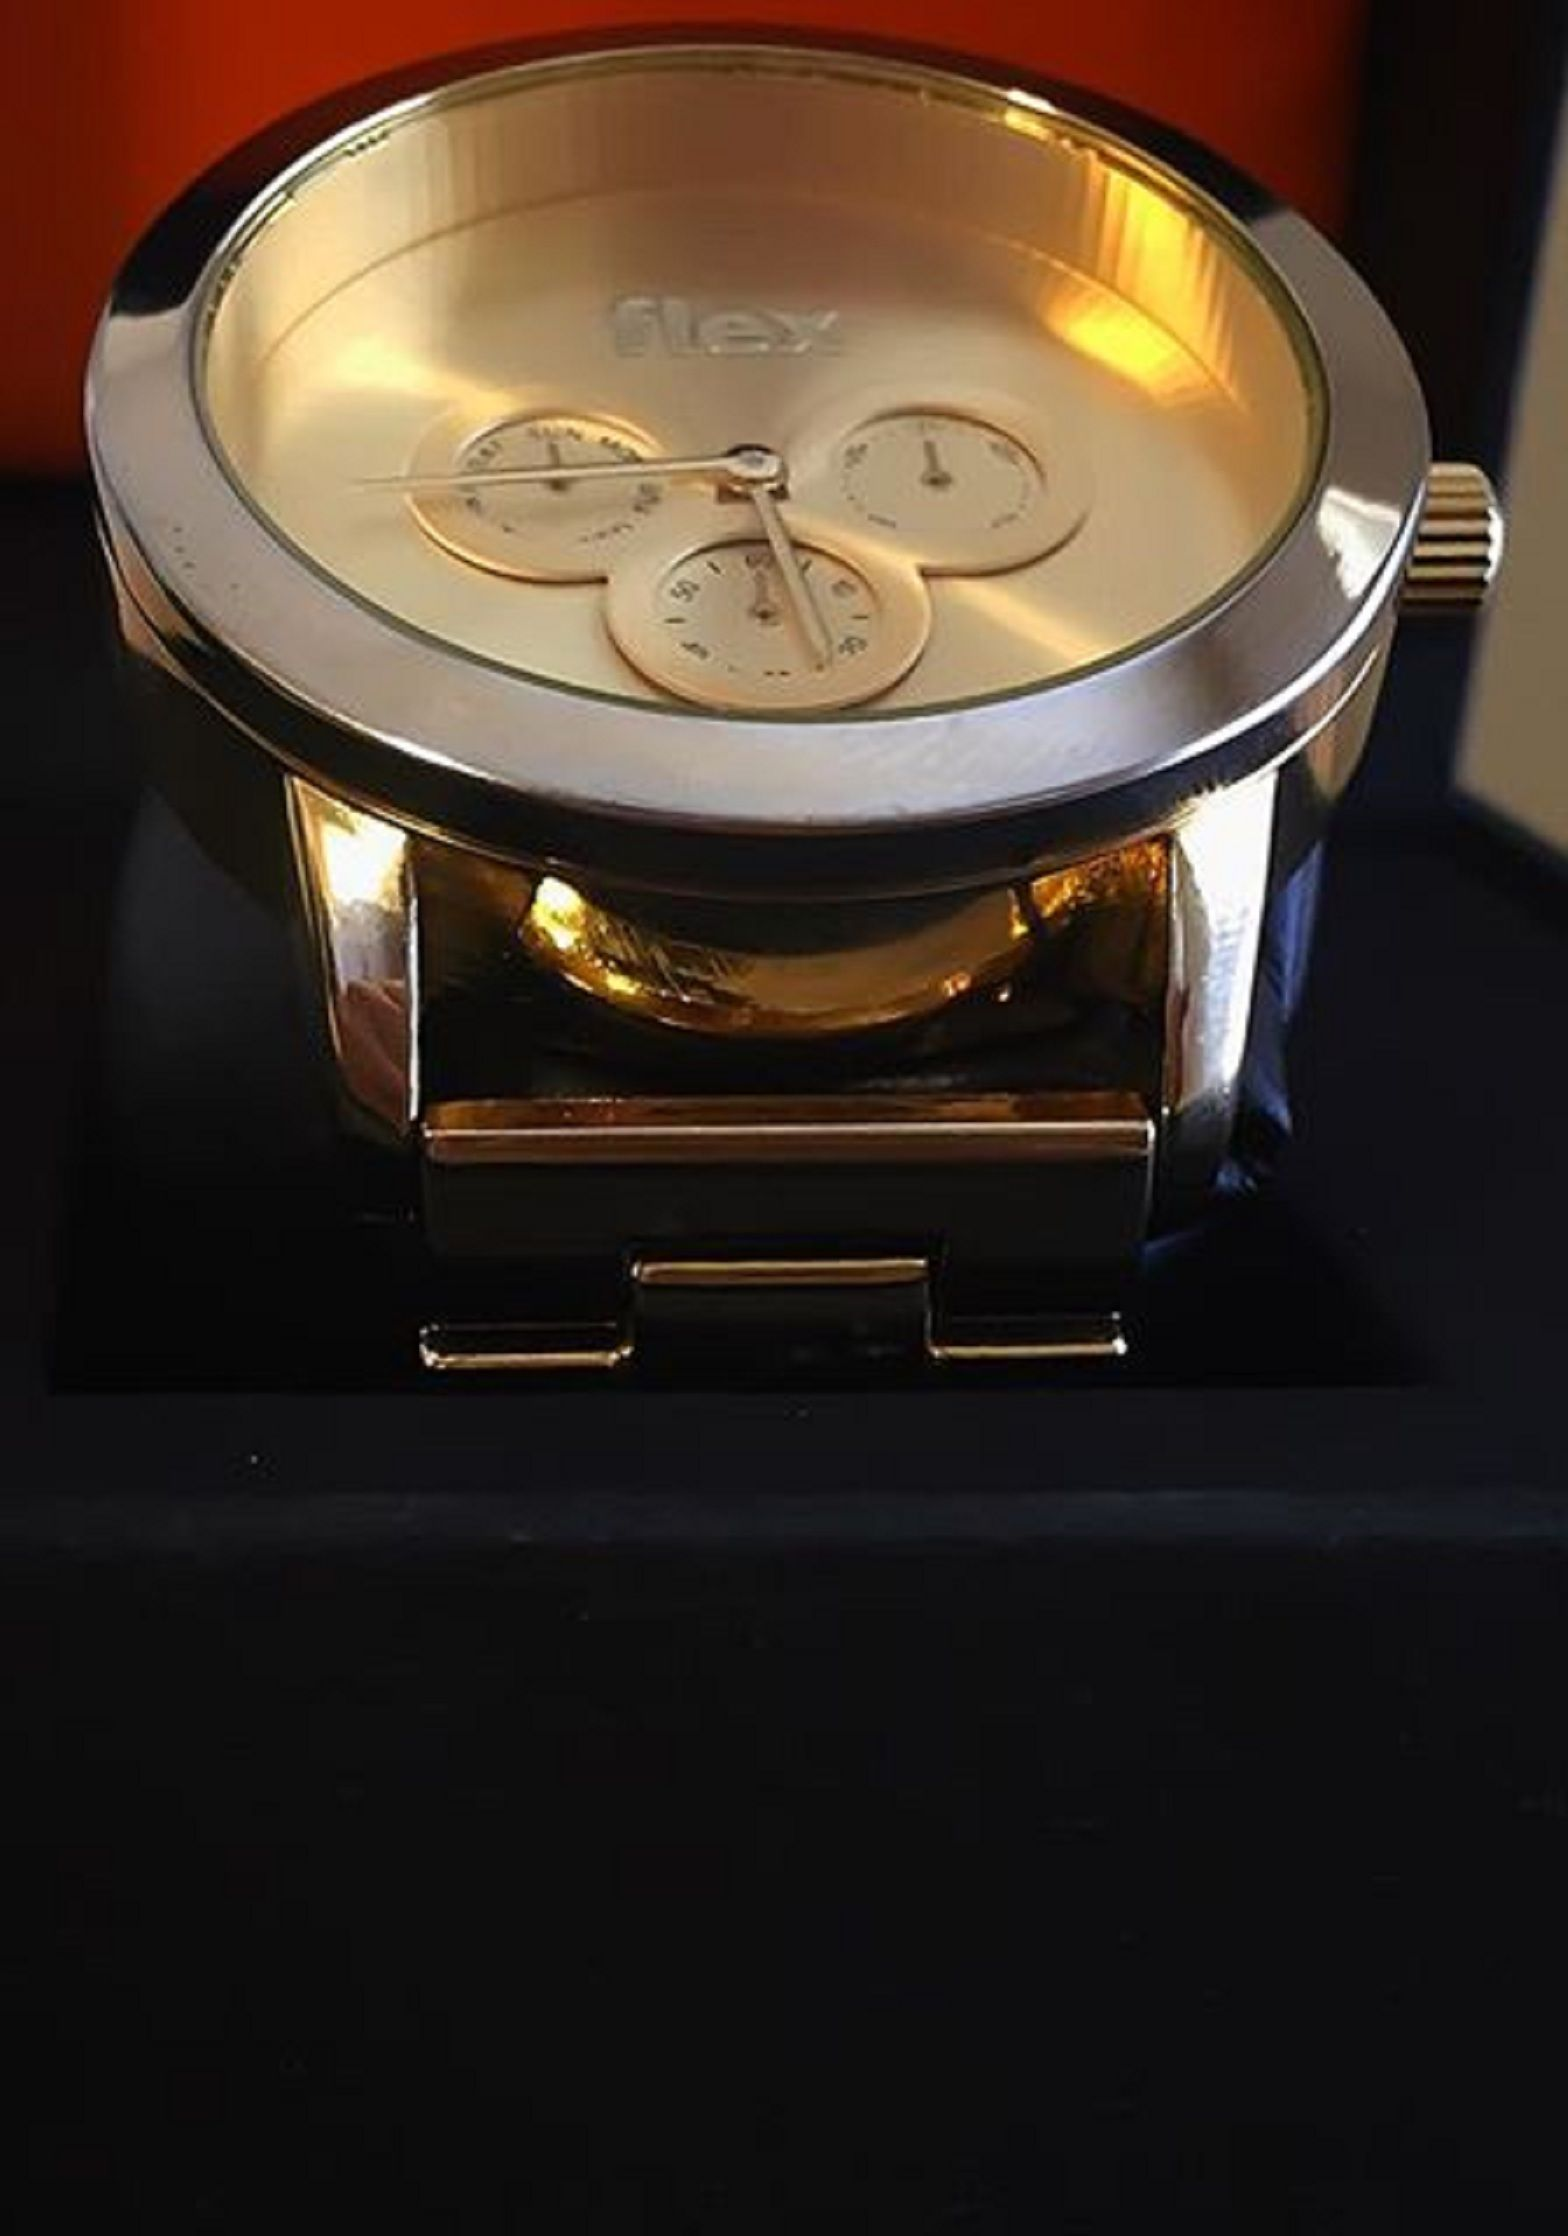 flexwatches The new Flex Watch features crystal glass, micron gold